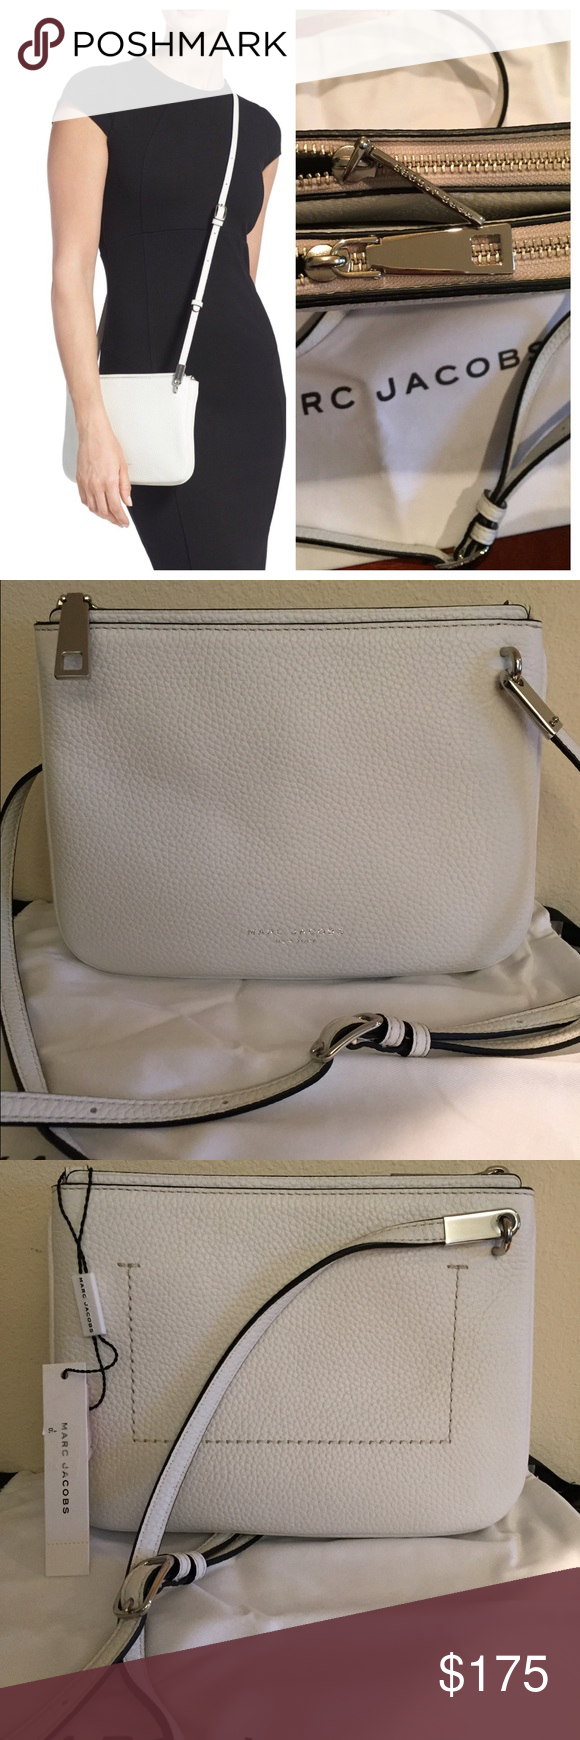 9c08785595b Marc Jacobs pike place double Percy crossbody bag Double up on convenience  and double down on